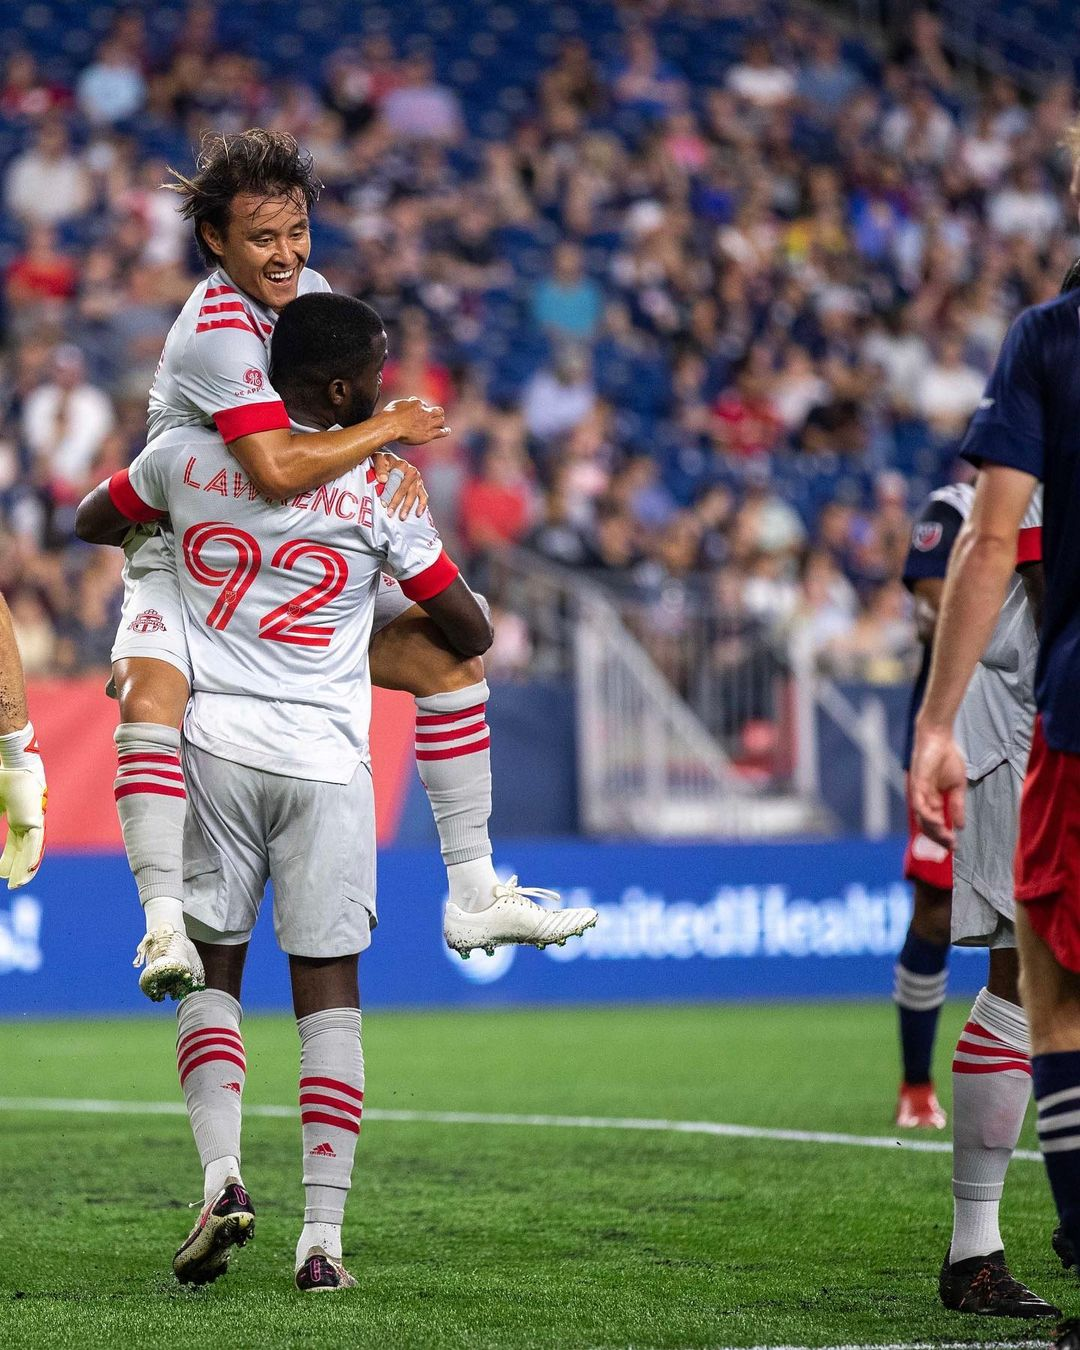 Toronto FC players embrace in celebration of a goal